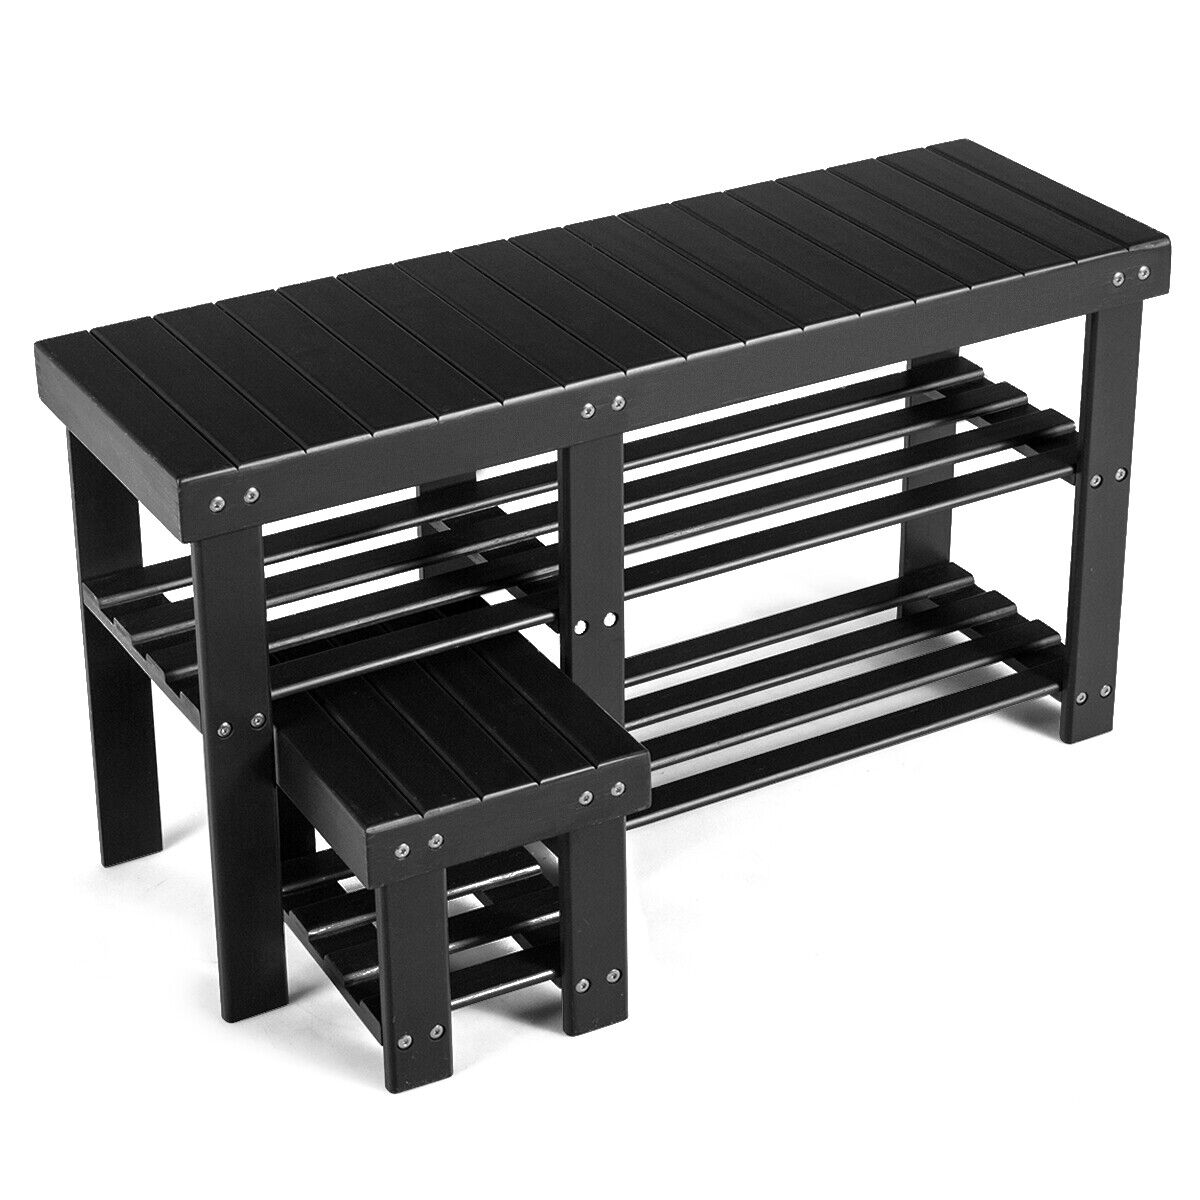 Picture of: Bamboo Shoe Rack Bench With Stool 3 Tier Storage Organizer For Entryway Black For Sale Online